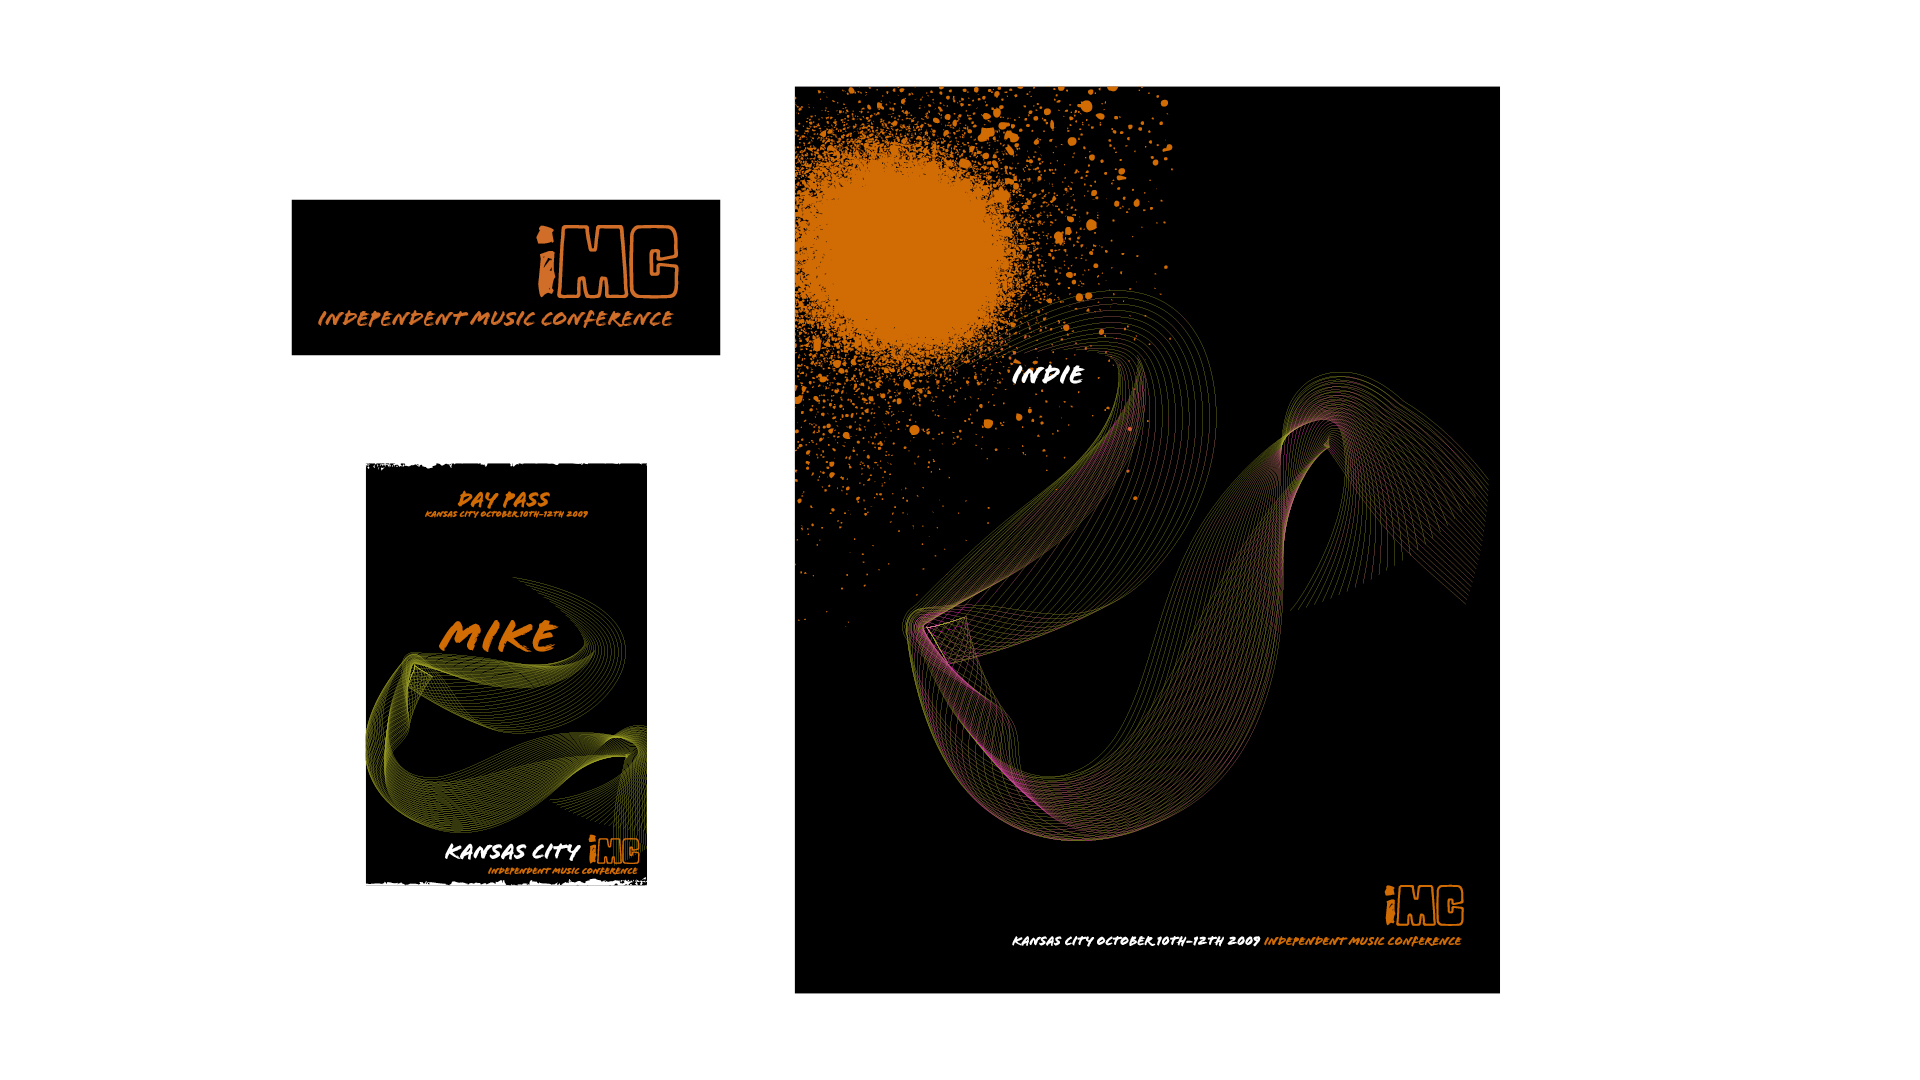 Independent Music Conference Brand Collateral